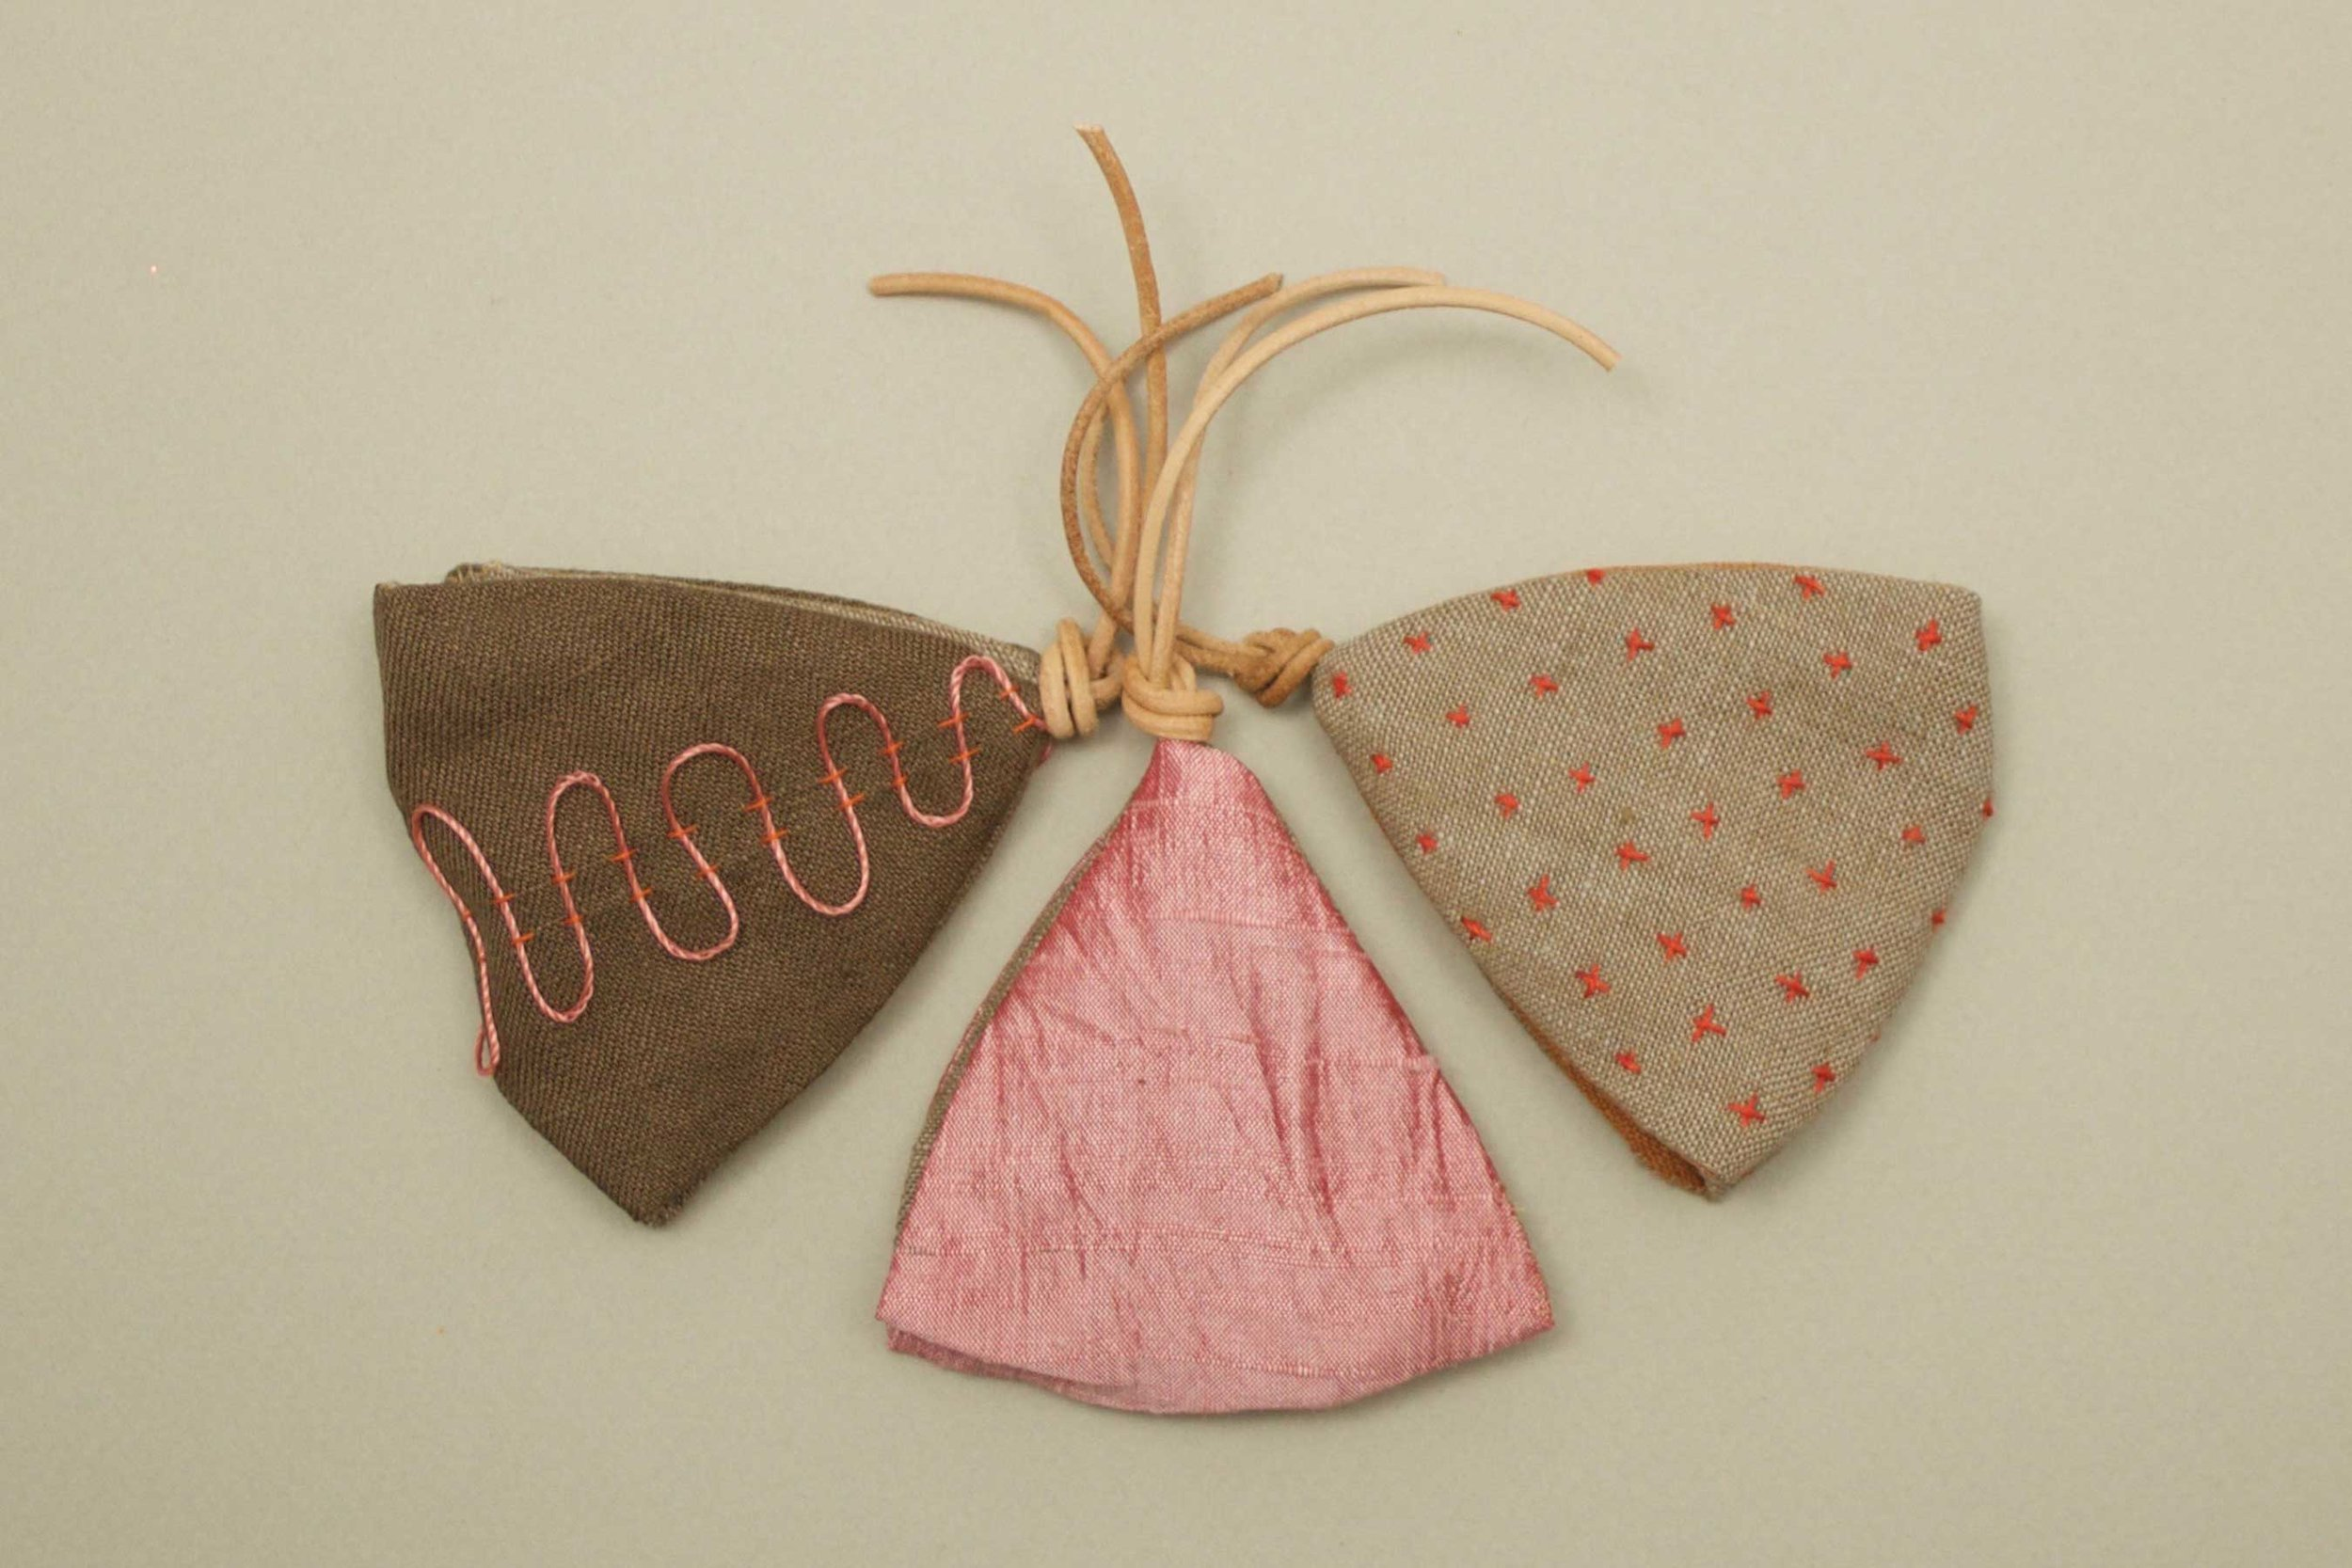 3 little pocket sized sachets handmade with silk and linen, hand embroidered for a personal touch. The sachet scent is a special holiday blend by Thread & Whisk.